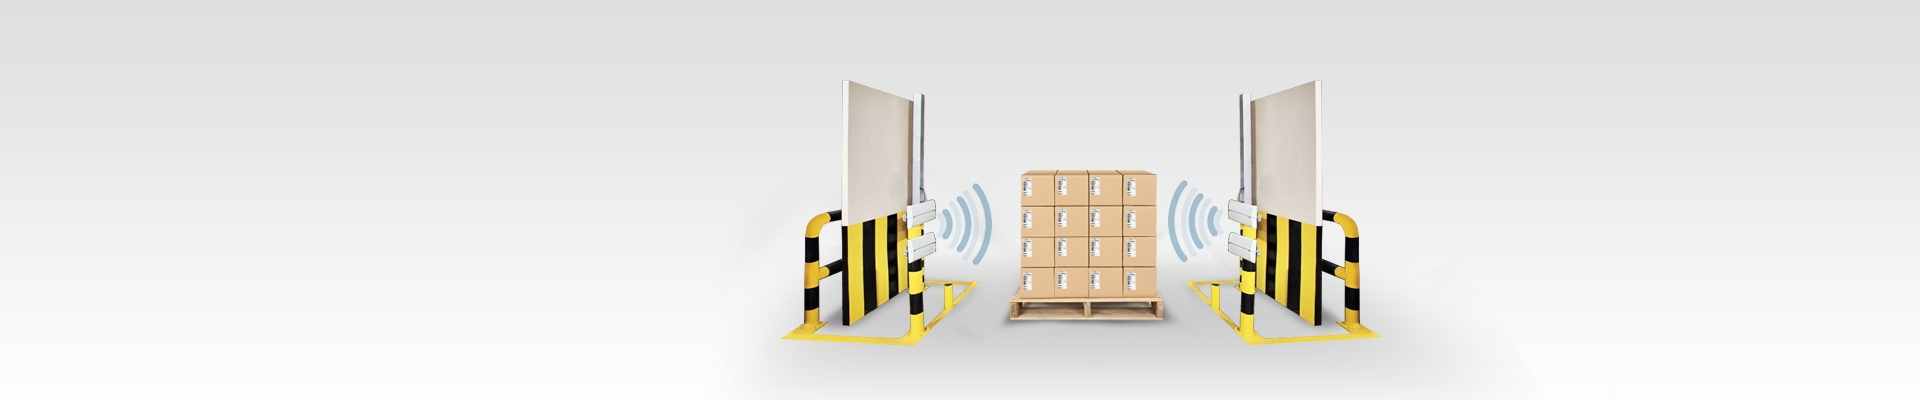 Integrated<br>RFID Systems<br><br>